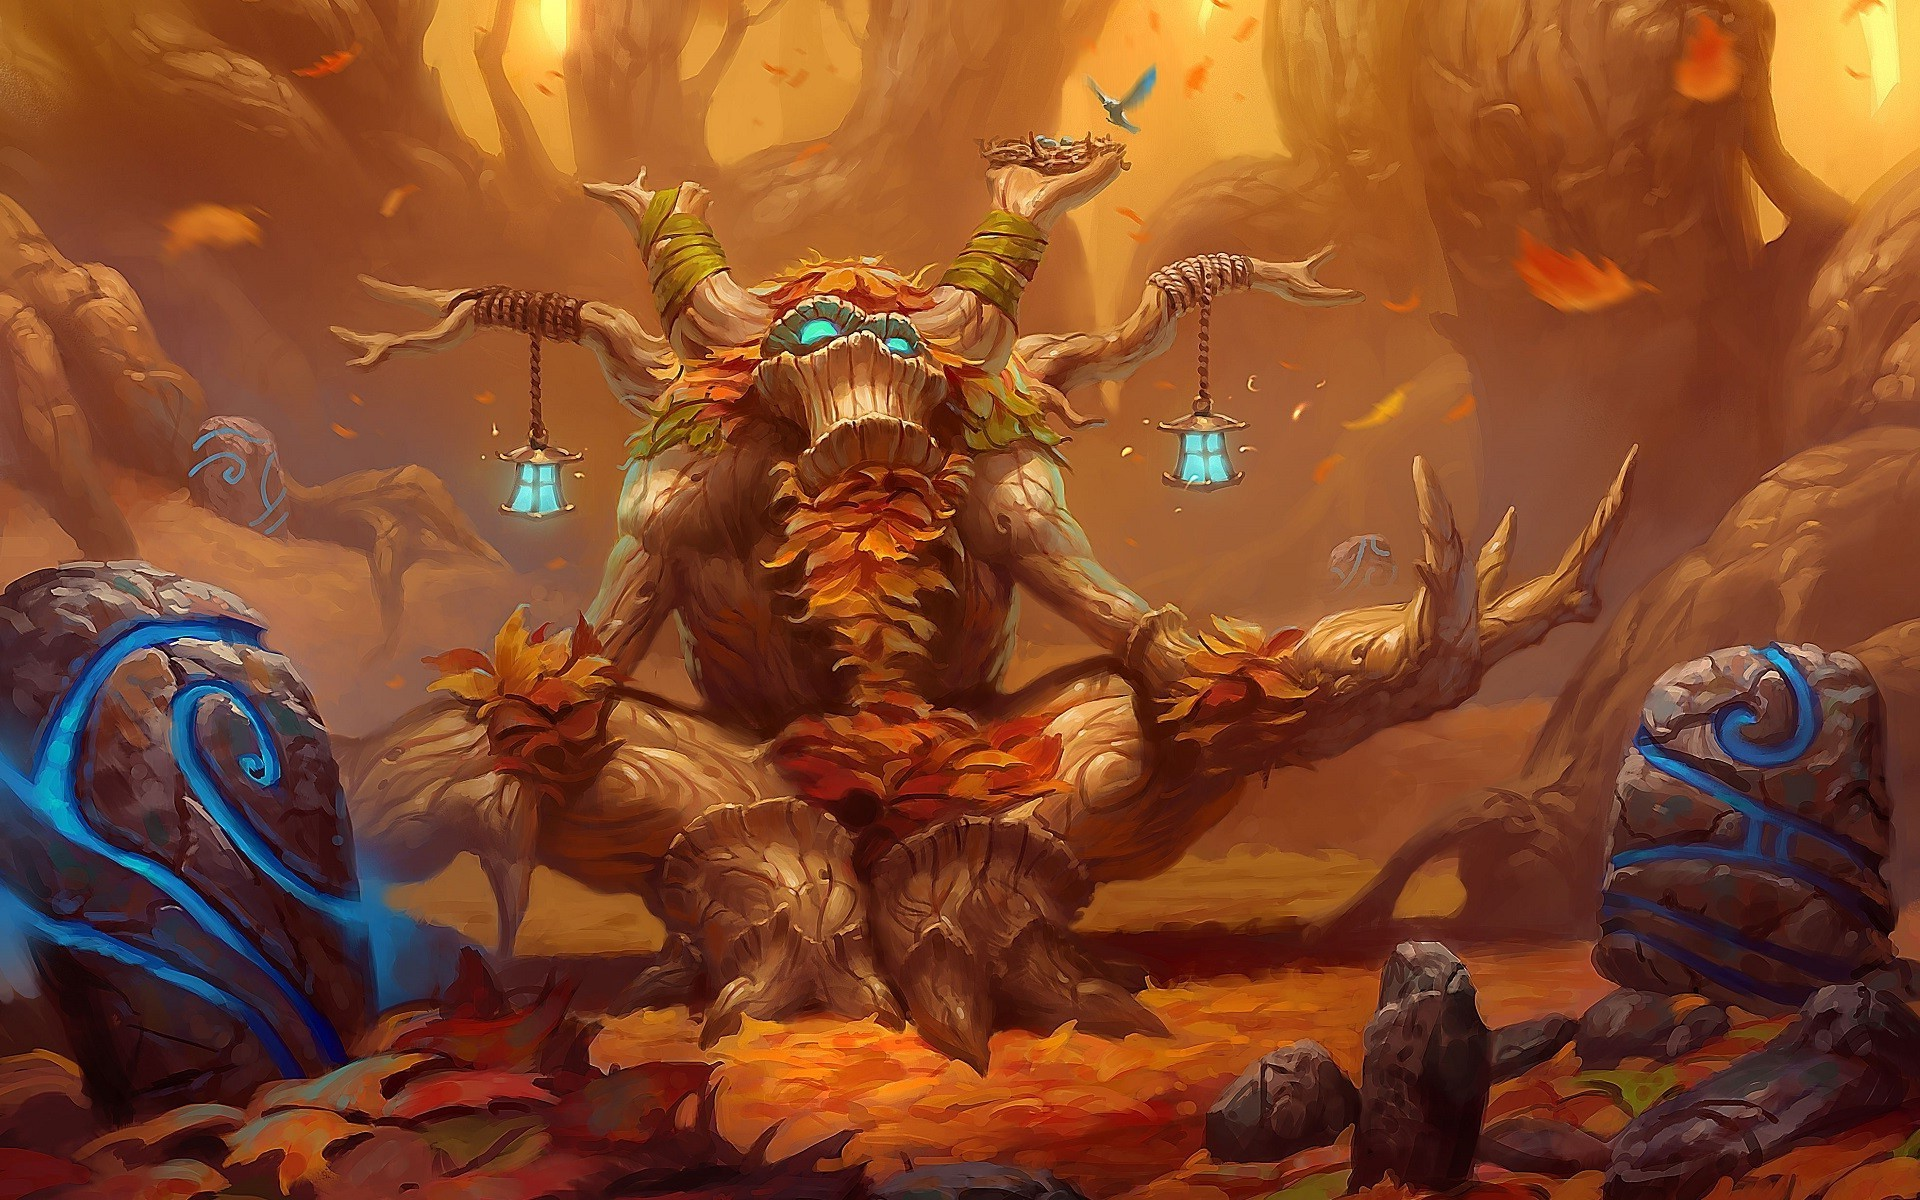 1920x1080 Download Now Full Hd Wallpaper Hearthstone Main Characters Fair